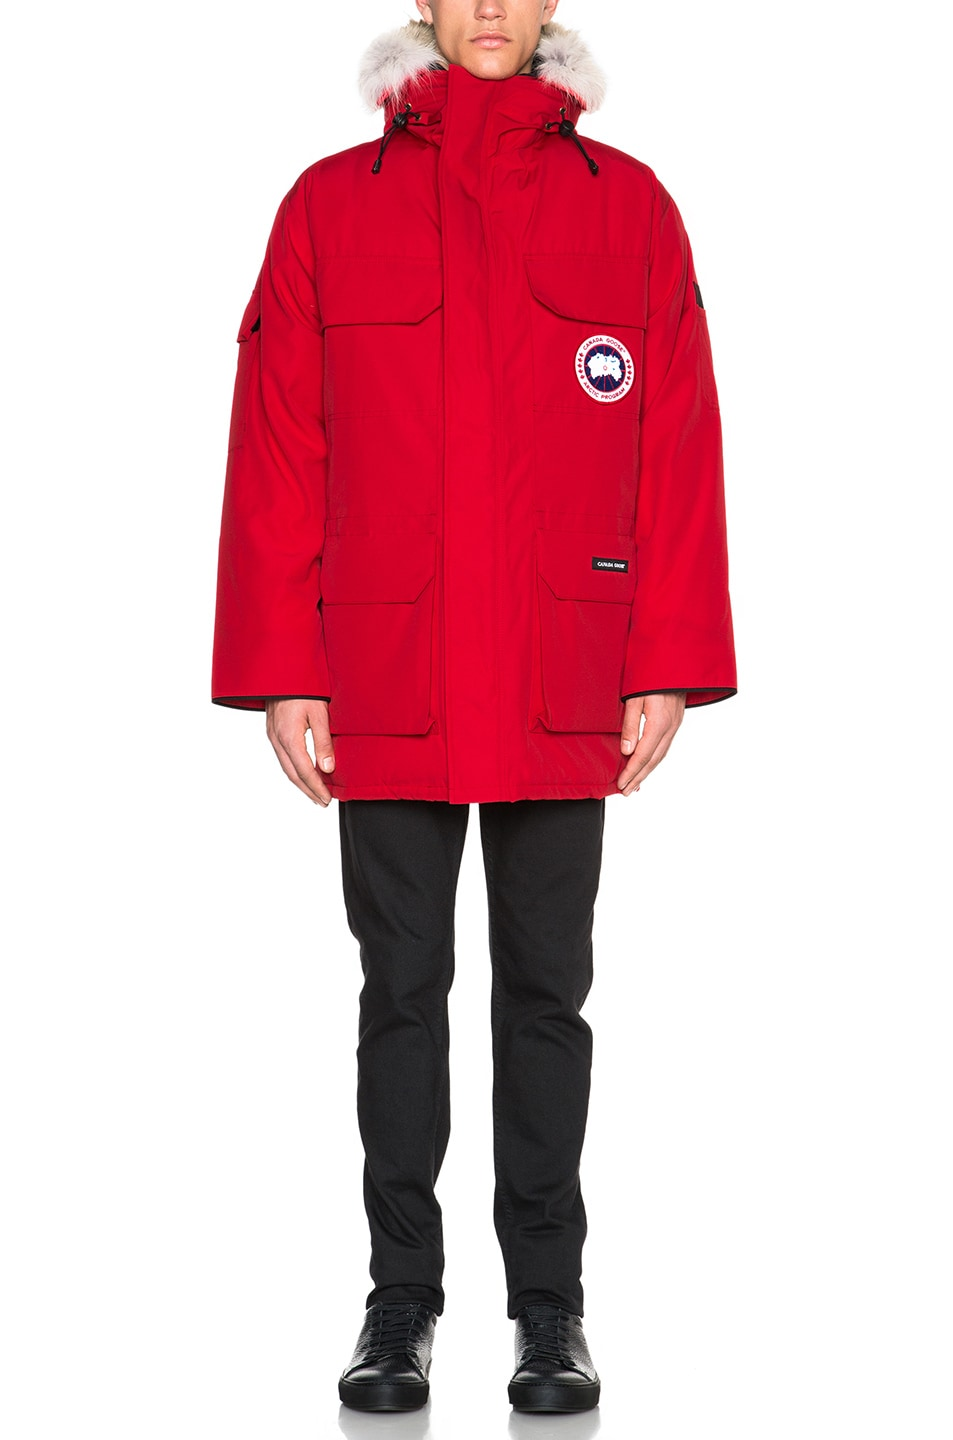 Image 2 of Canada Goose Expedition Parka in Red